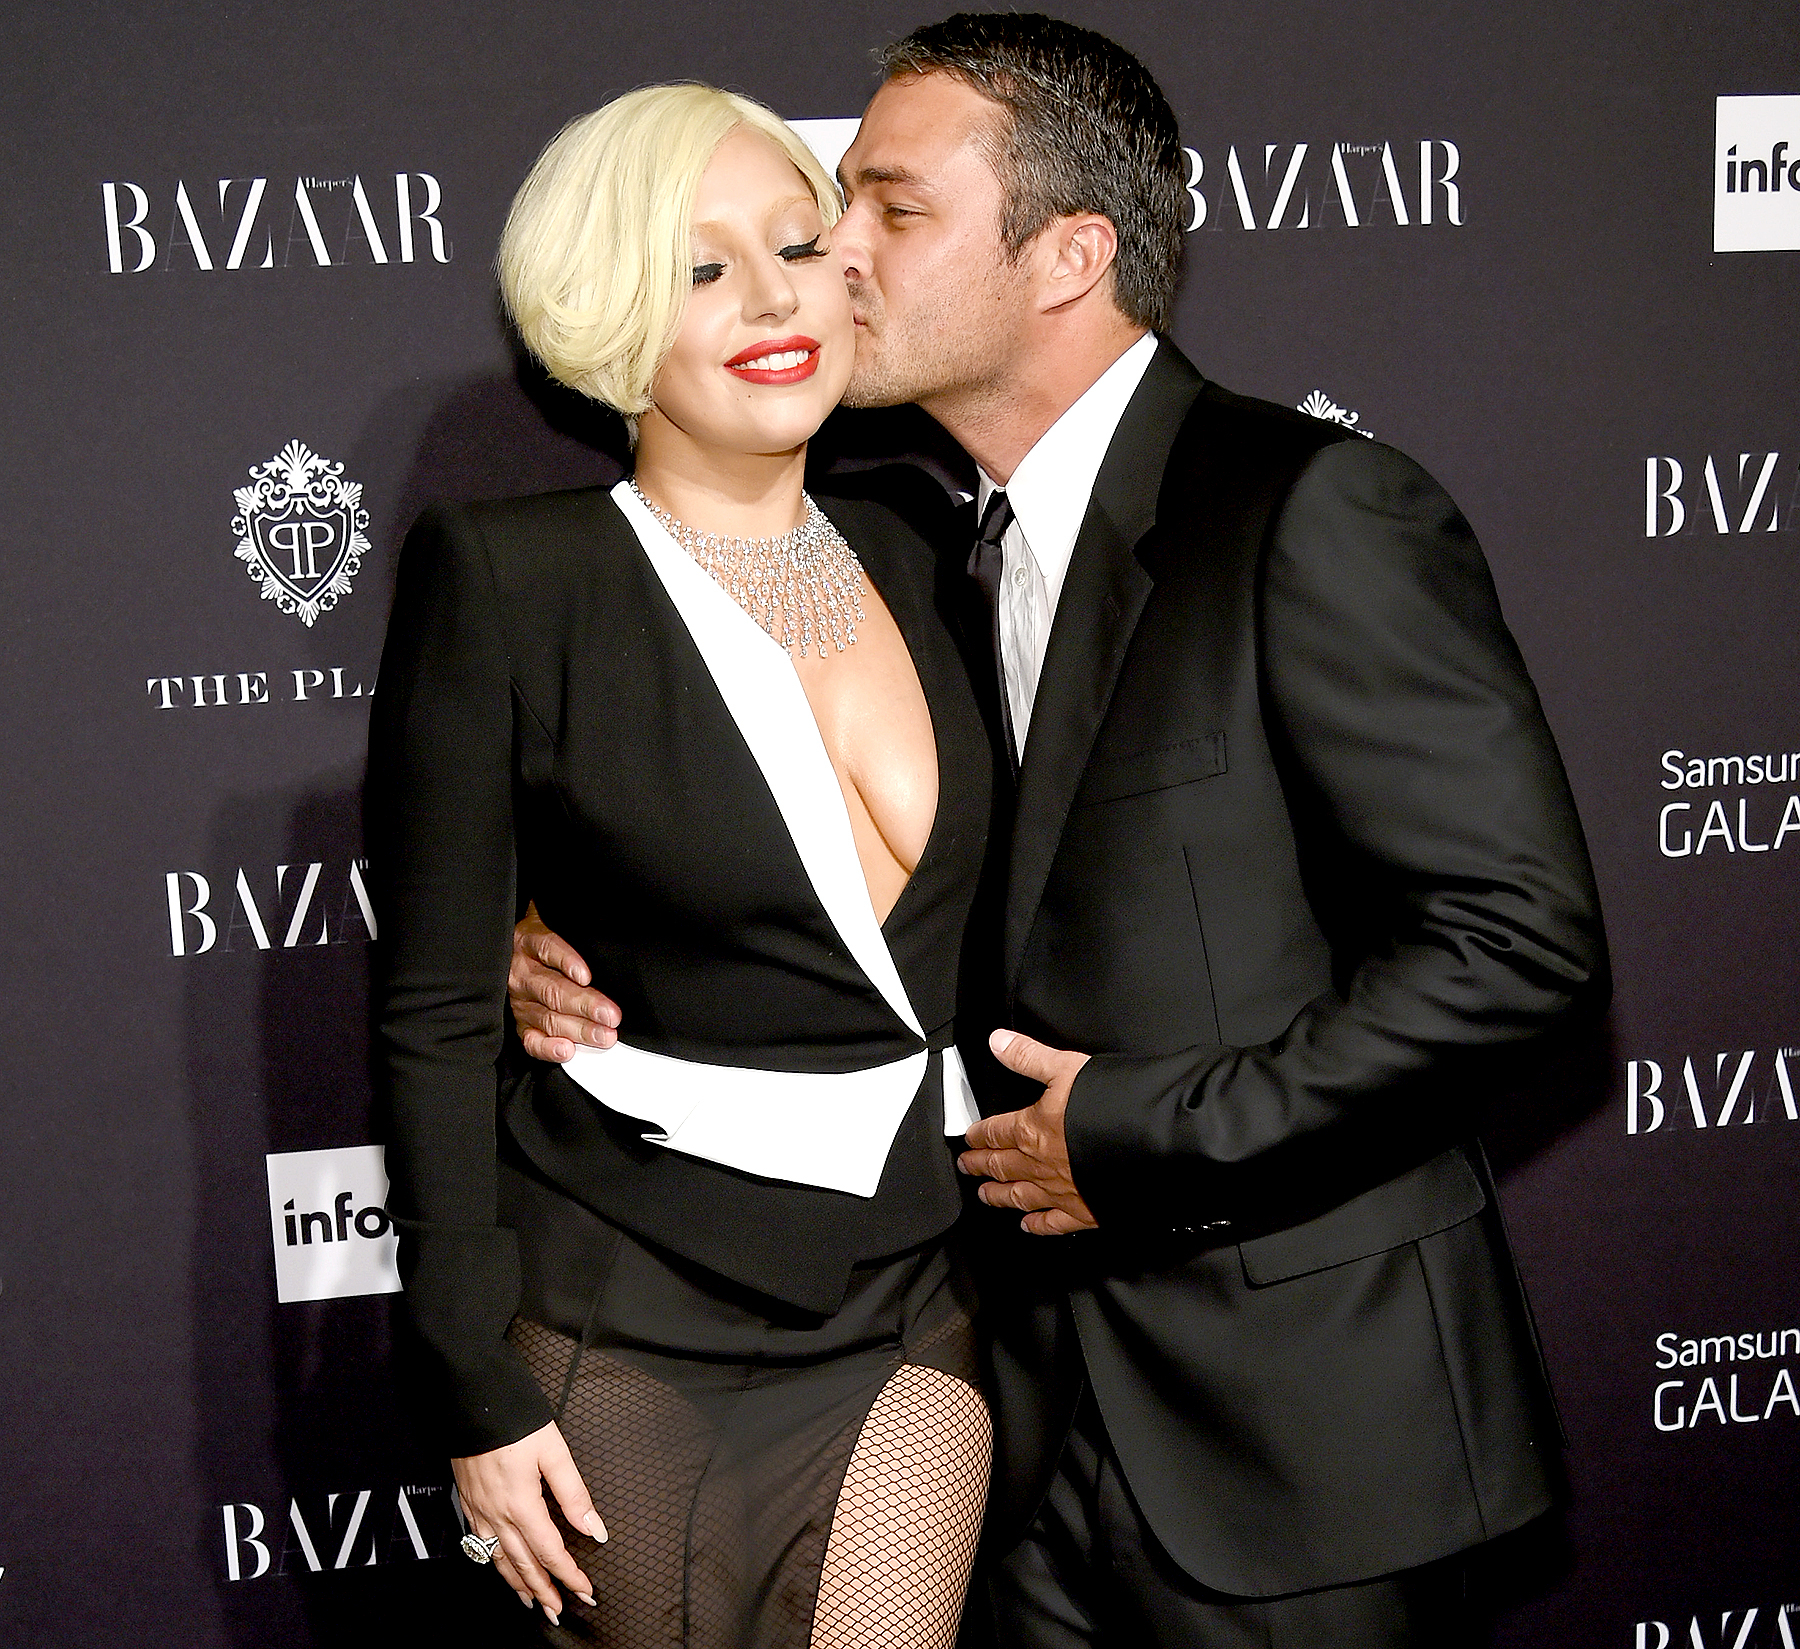 Lady Gaga and Taylor Kinney attend Samsung Galaxy at Harper's Bazaar Celebrates Icons by Carine Roitfeld at the Plaza Hotel on Sept. 5, 2014.